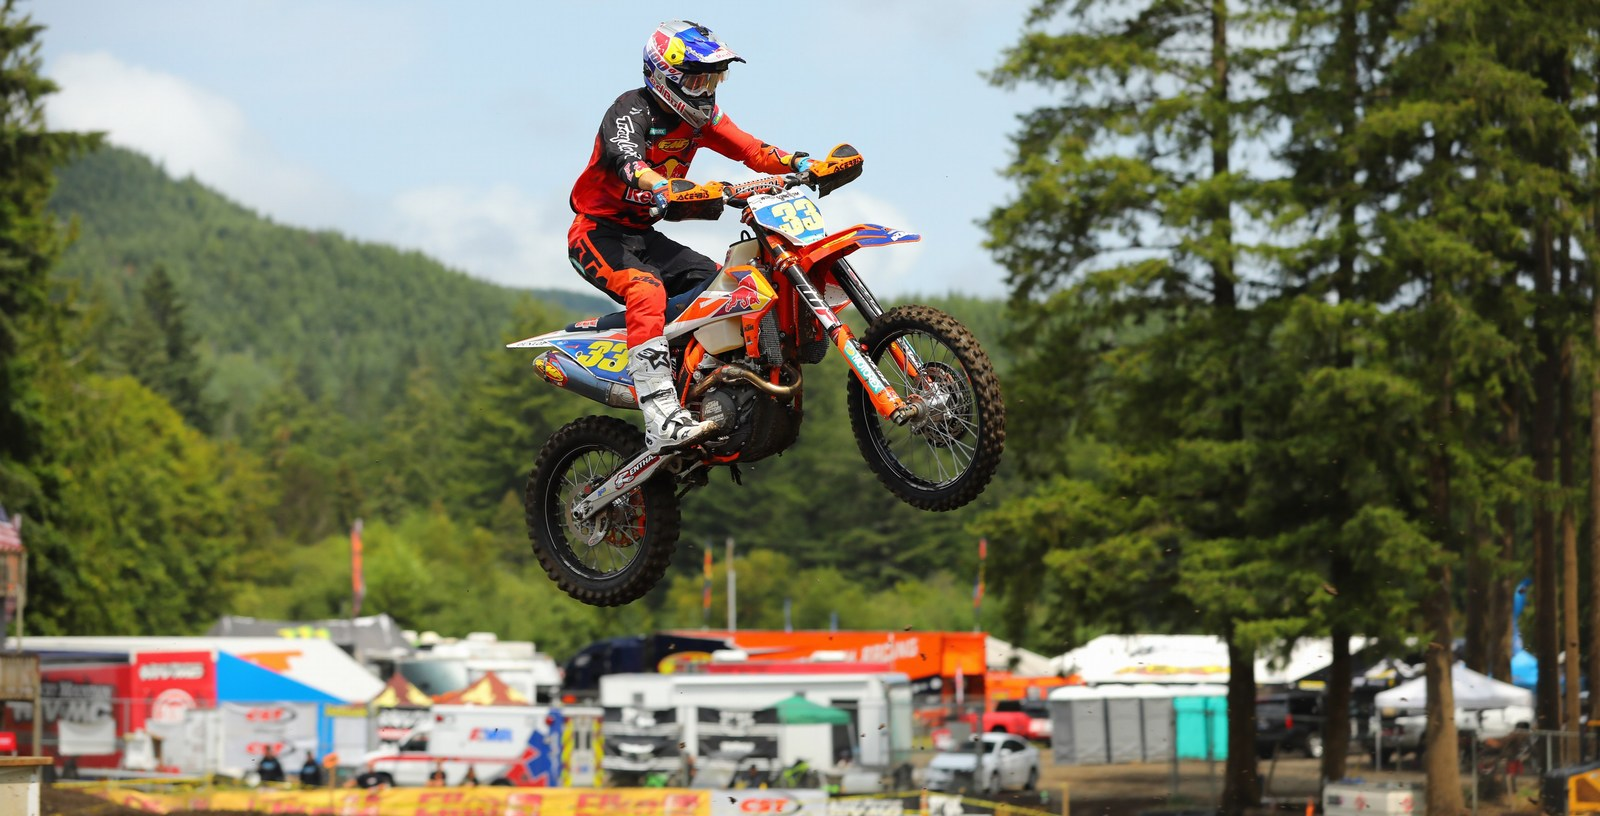 2019-08-taylor-robert-jump-bike-worcs-racing